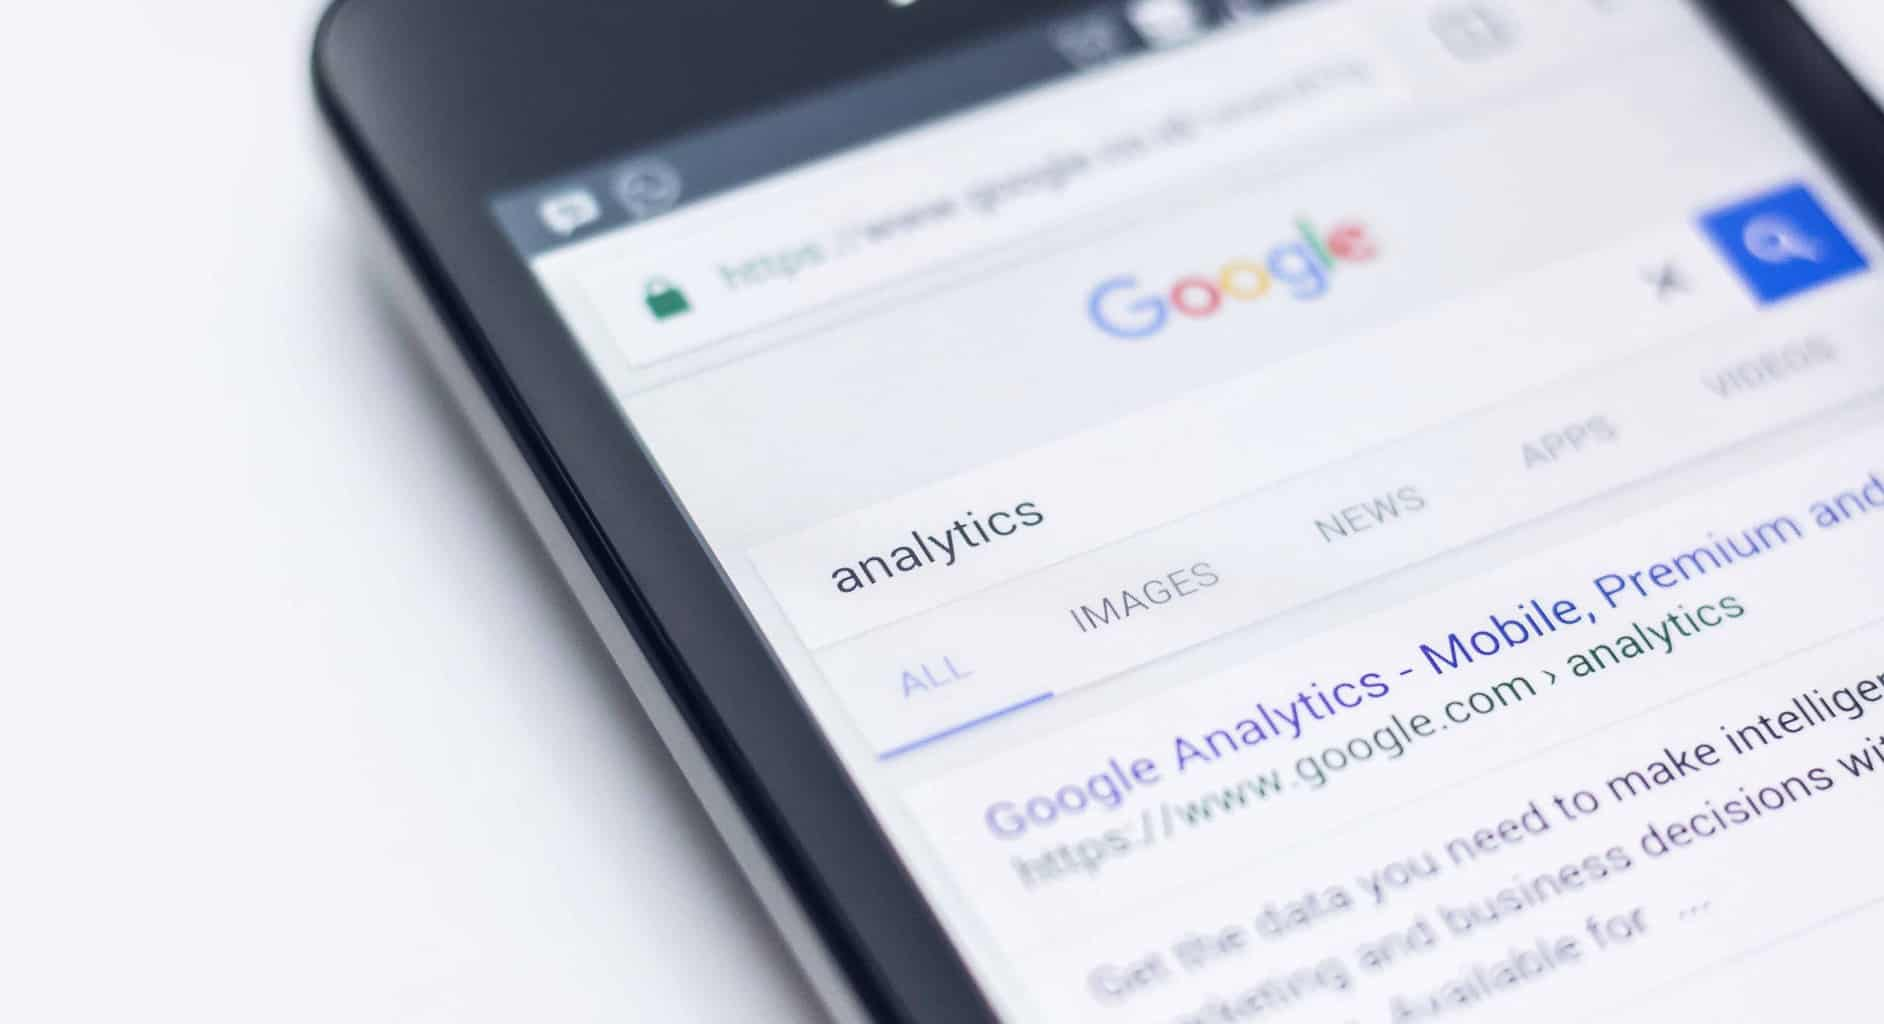 the word 'analytics' was googled and shows 'Google Analytics' as the first search result.